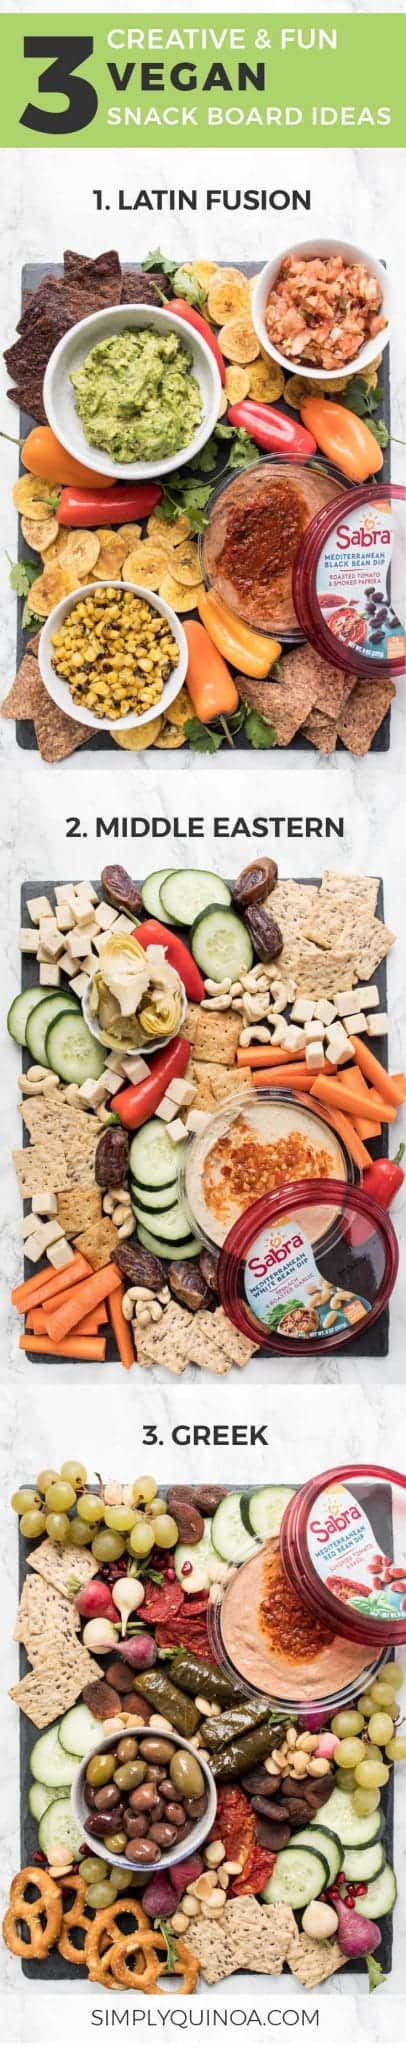 how to make a vegan snack board 3 different ways